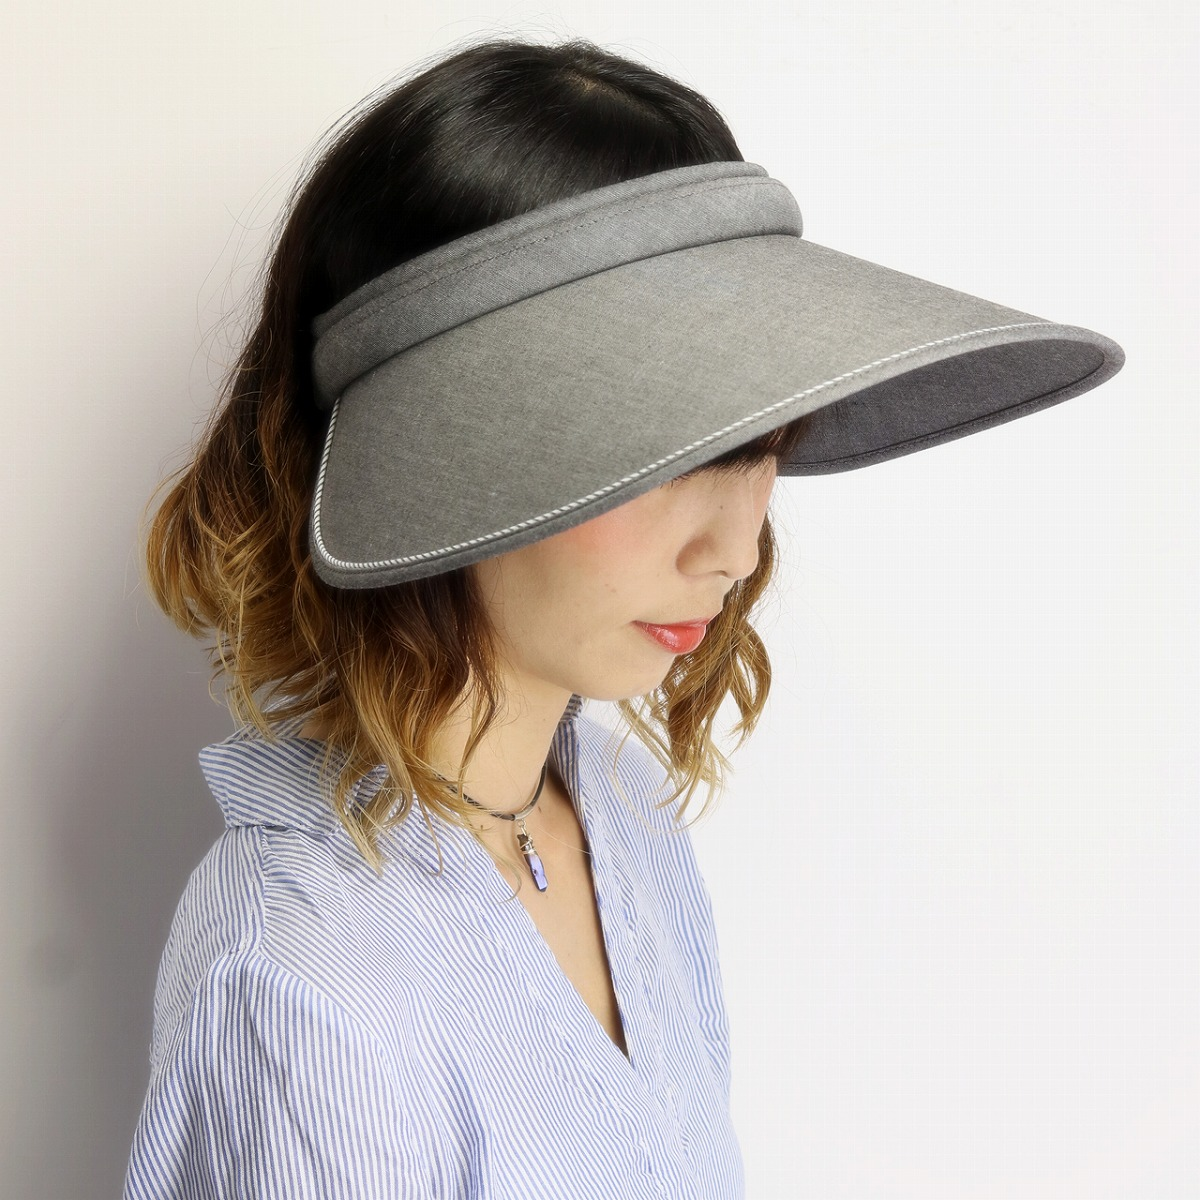 It is a present on gift hat Respect for the Aged Day in the sun visor woman hat plain fabric / black black [visor] Mother's Day when simple life sun visor cool max Lady's ultraviolet rays measures visor UV measures awning hat Simple life brand clip visor